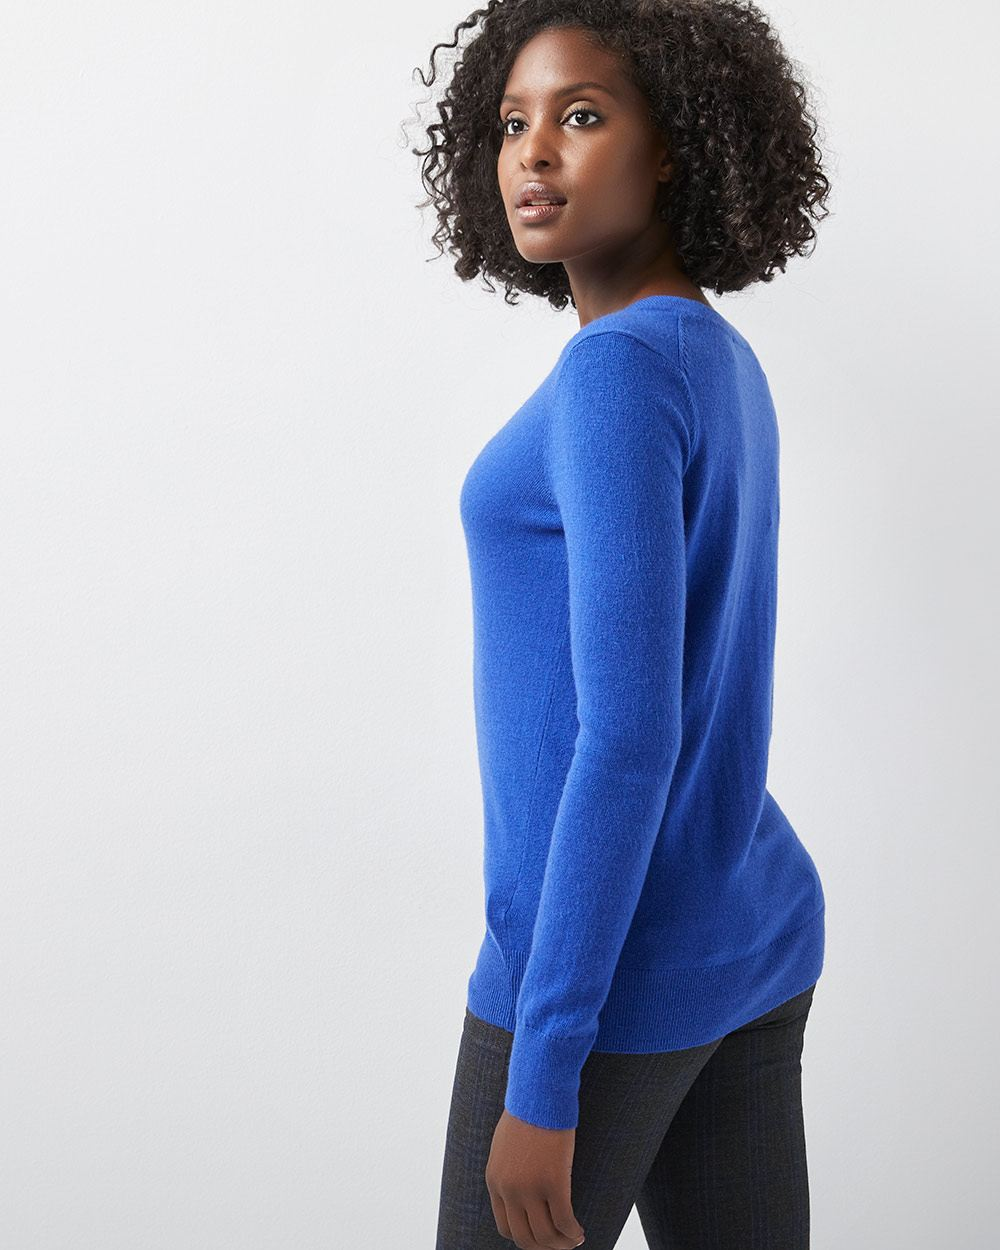 Cashmere-like V-neck sweater